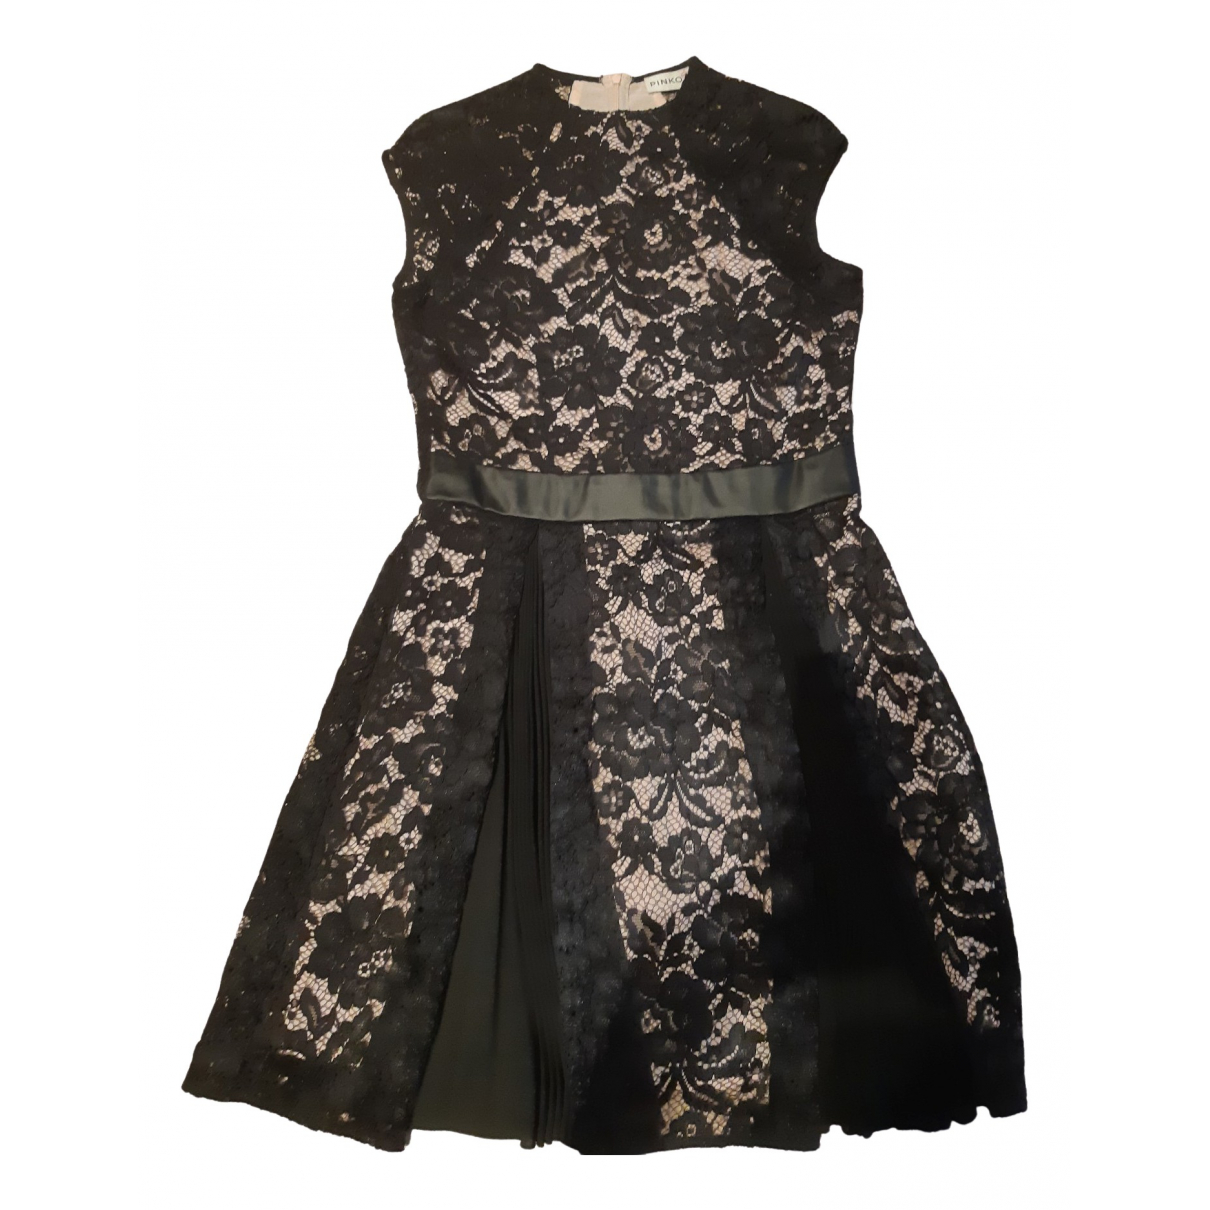 Pinko N Black dress for Kids 14 years - S FR